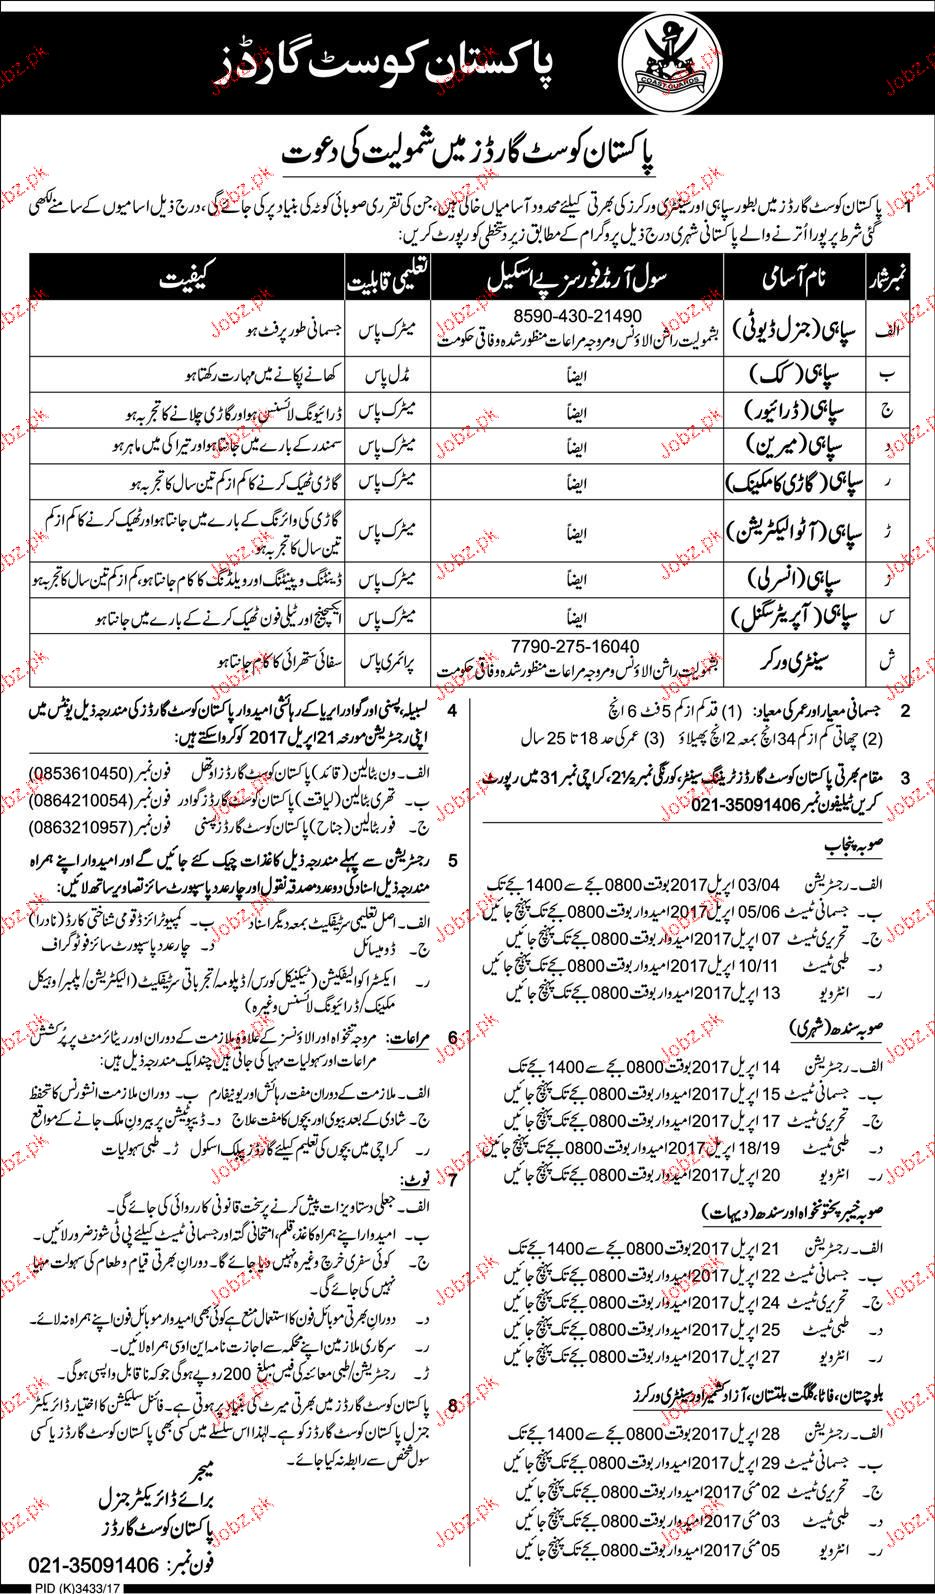 Recruitment of General Seopy in Pakistan Coast Guards